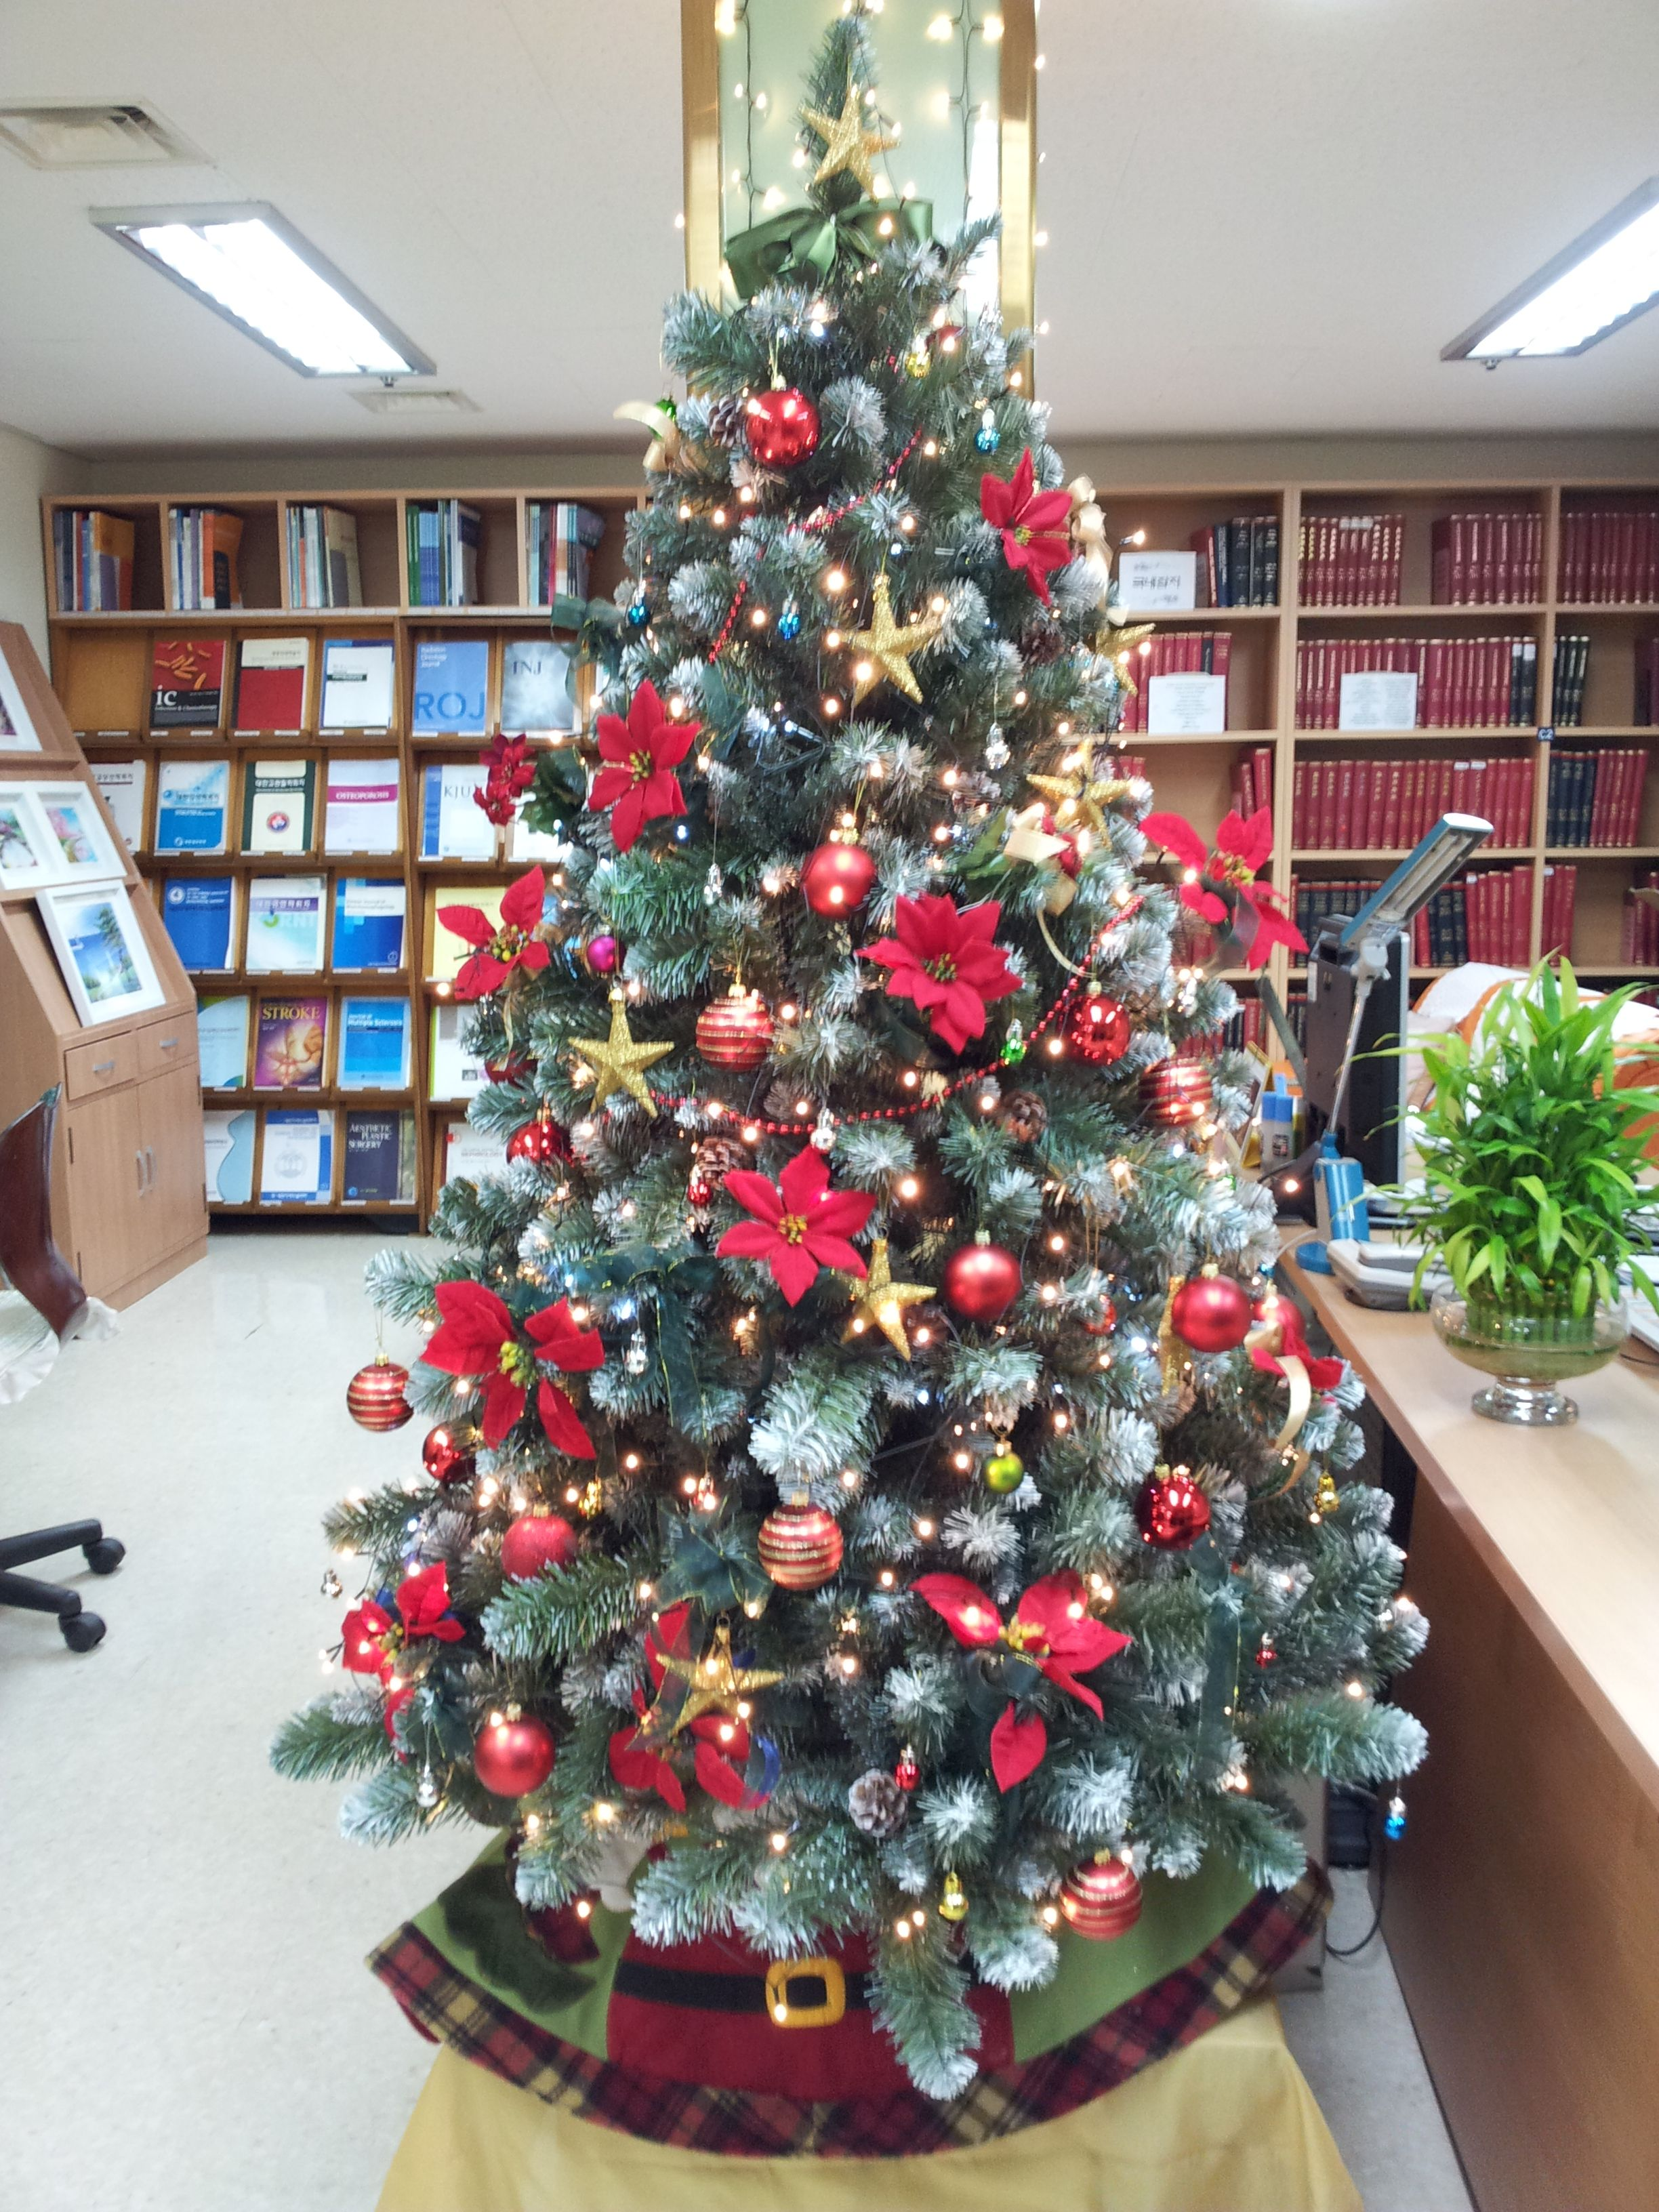 Christmas tree at library of Vincent hospital